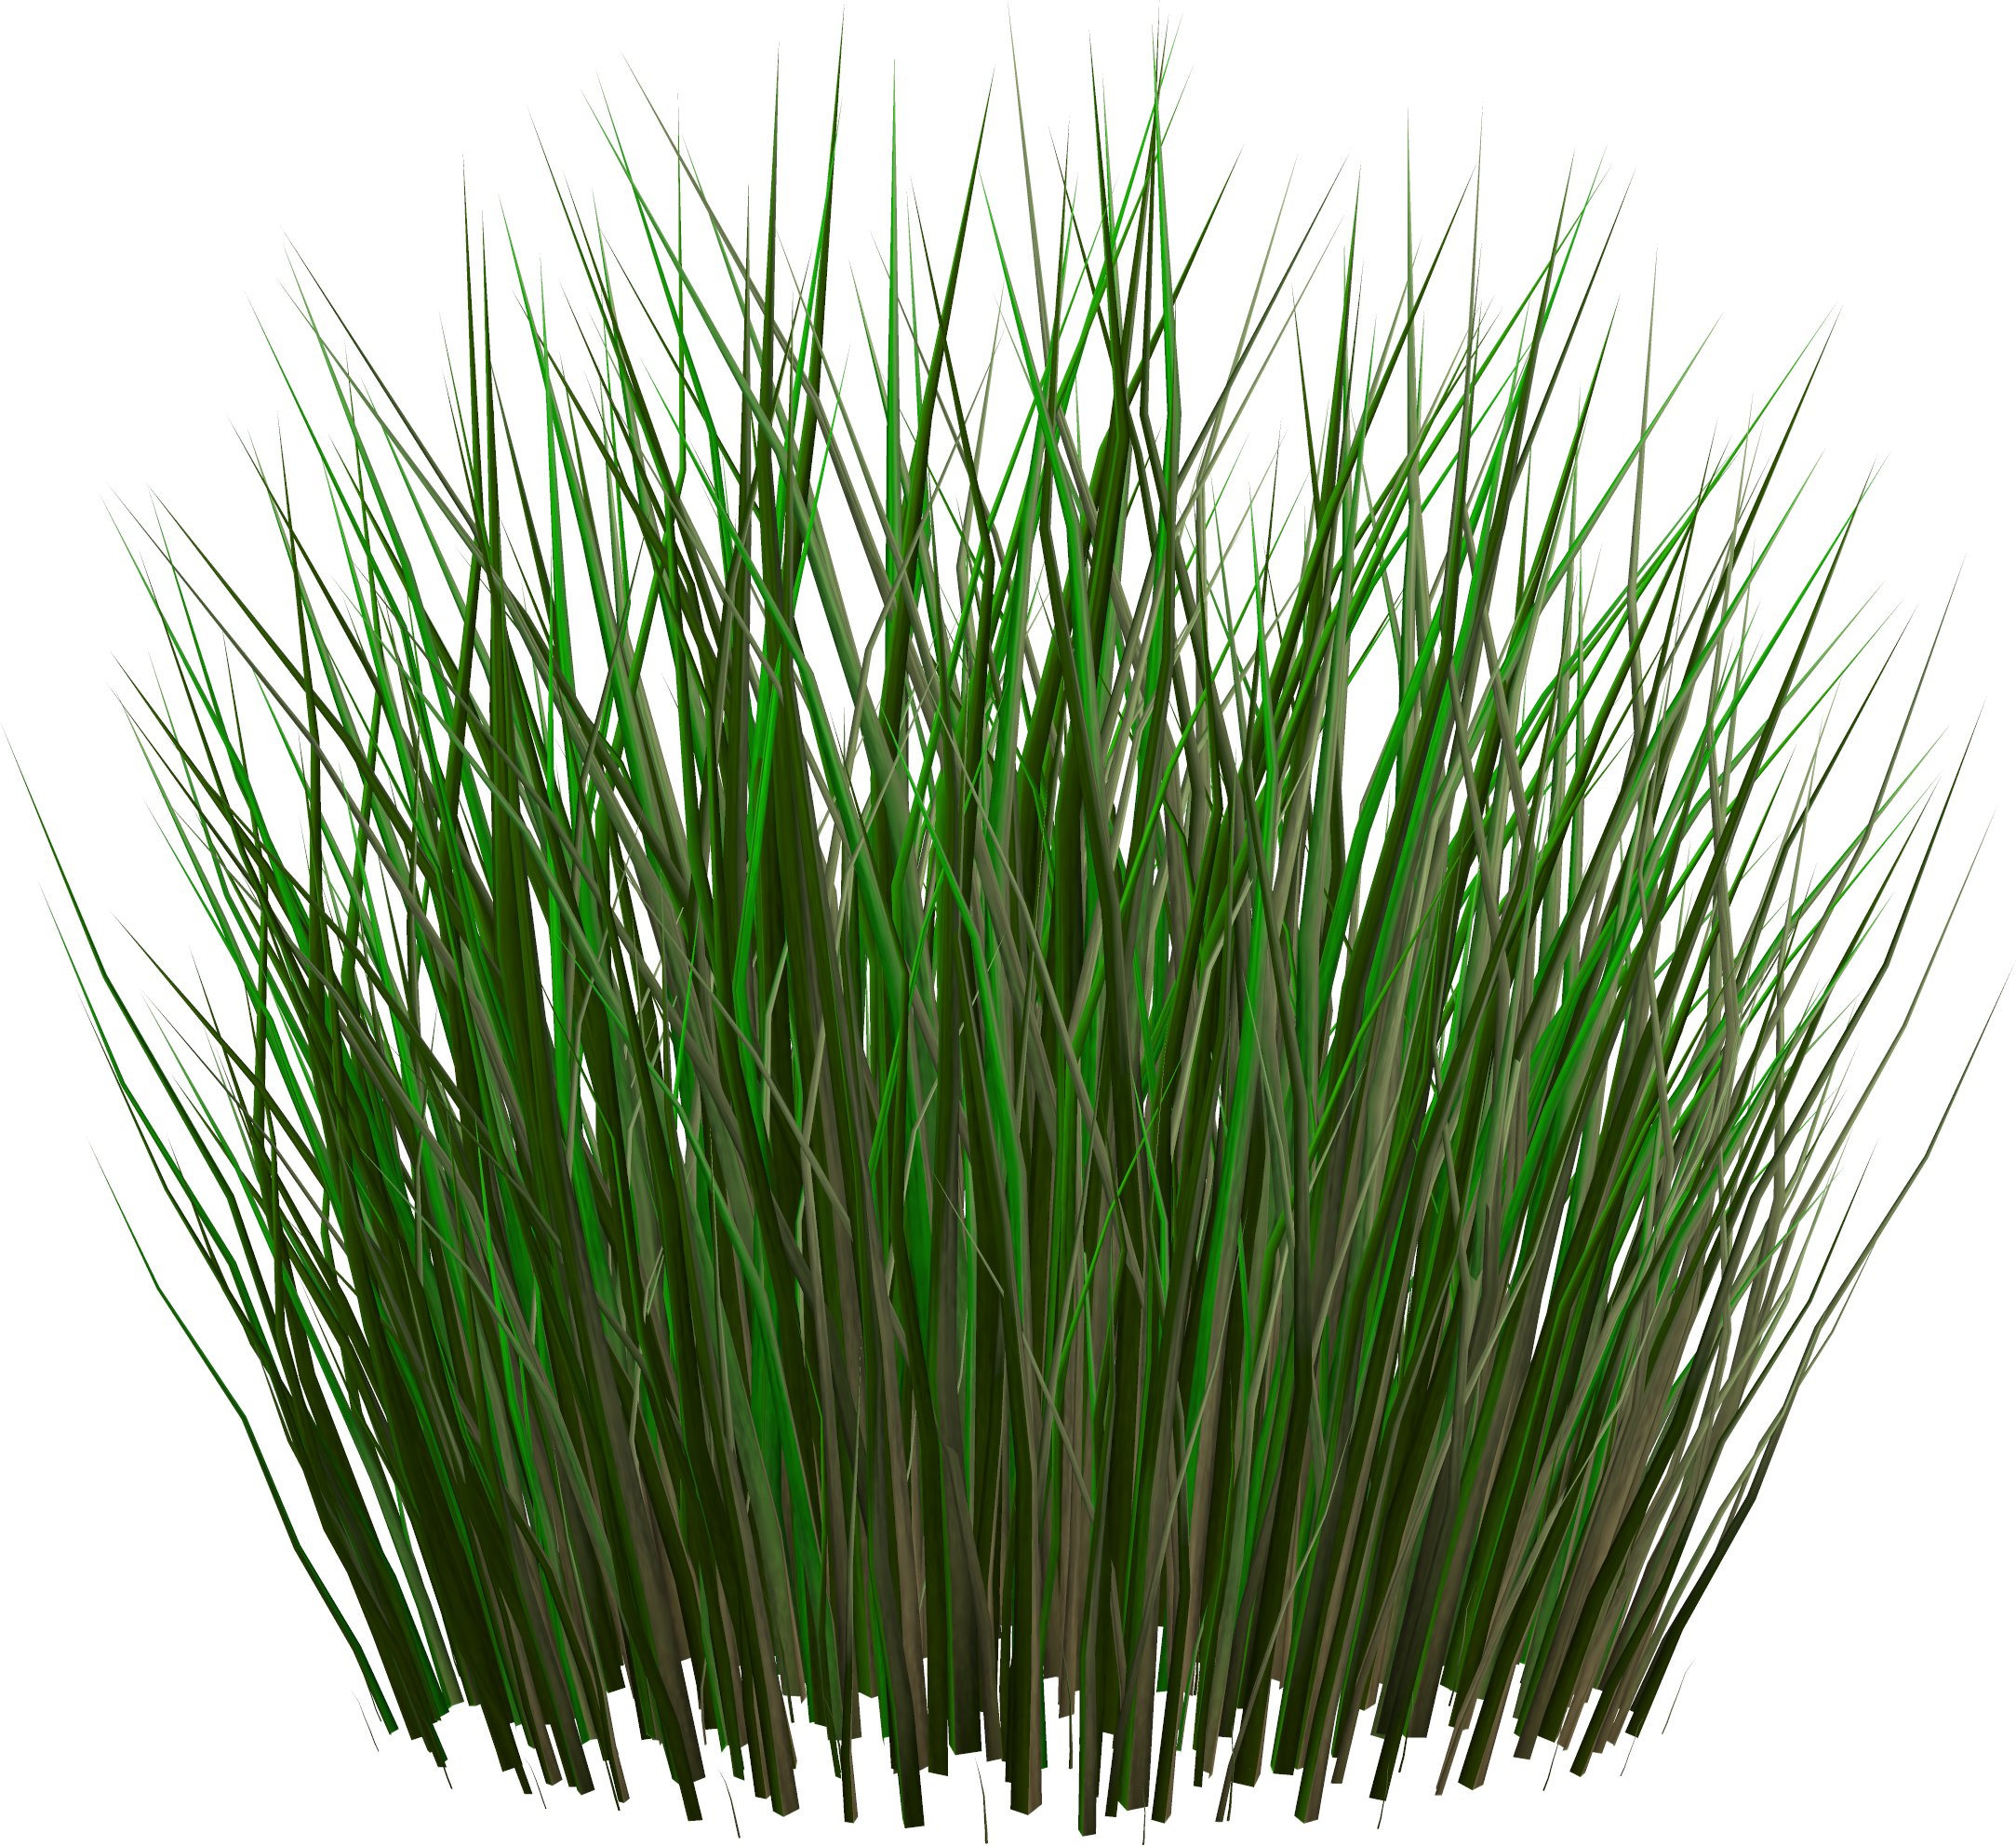 Tall Grass PNG Images, Pictures image #44165